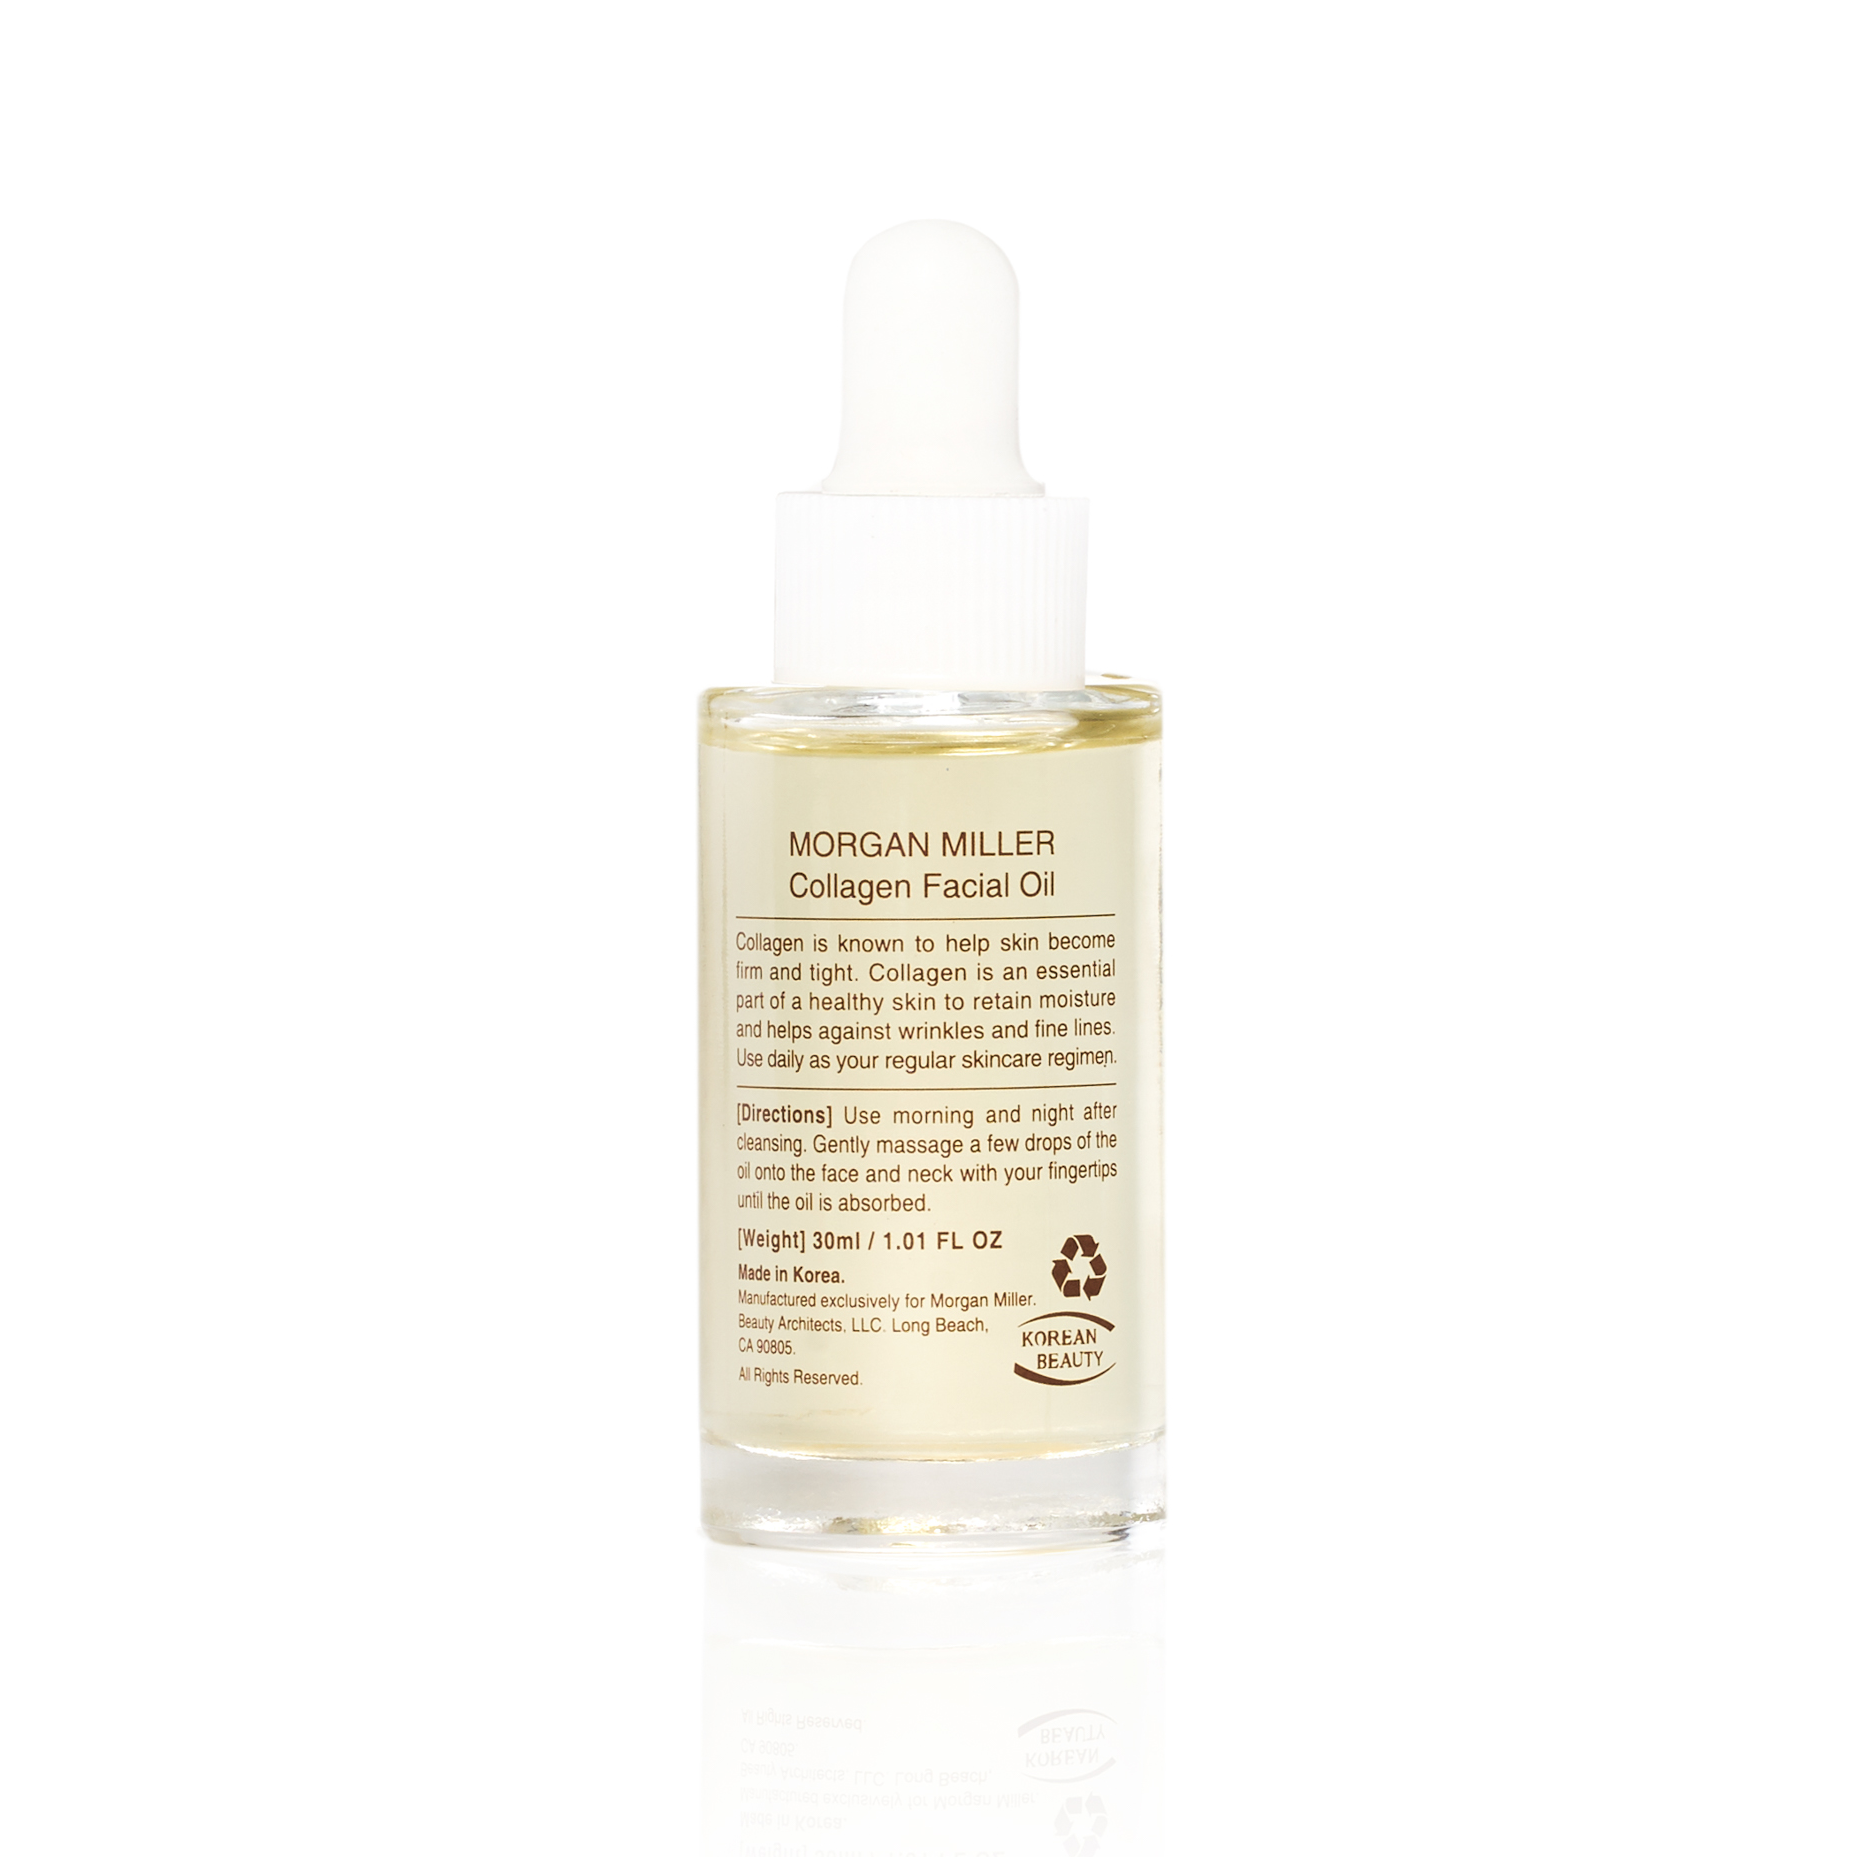 Collagen Facial Oil, 1.01 FL OZ